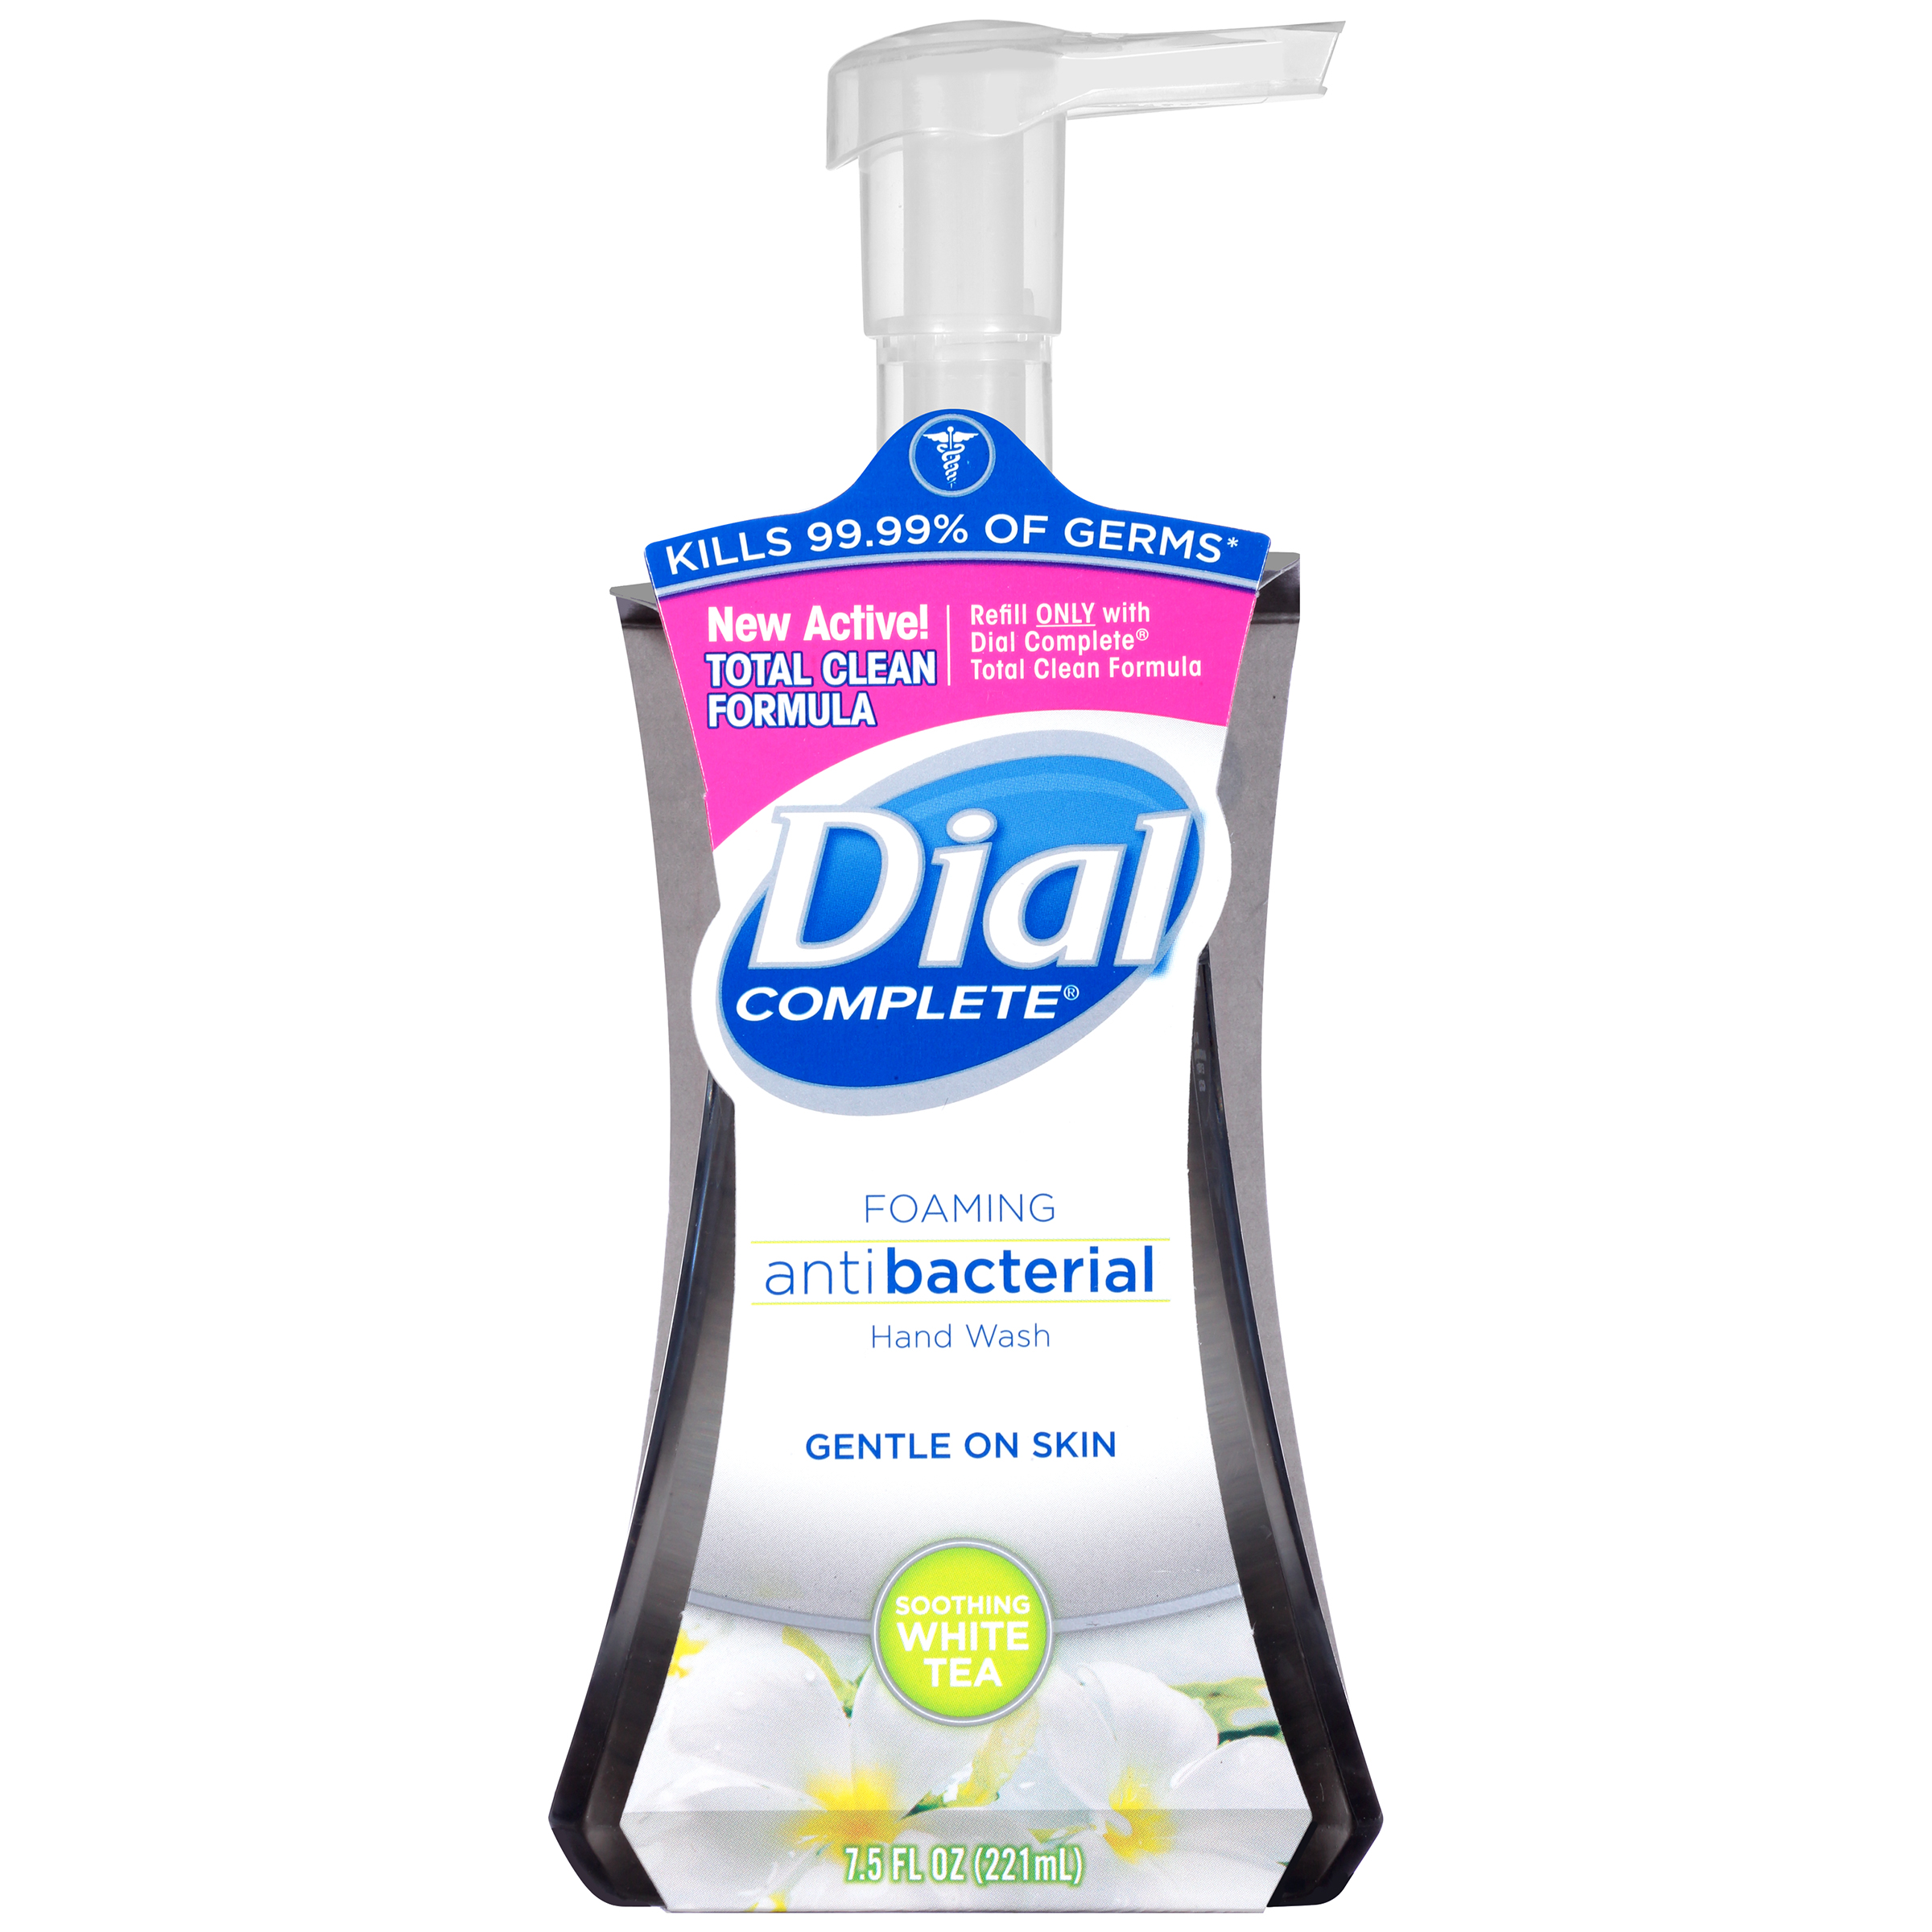 Dial Complete Antibacterial Foaming Hand Wash, Soothing White Tea, 7.5 Ounce